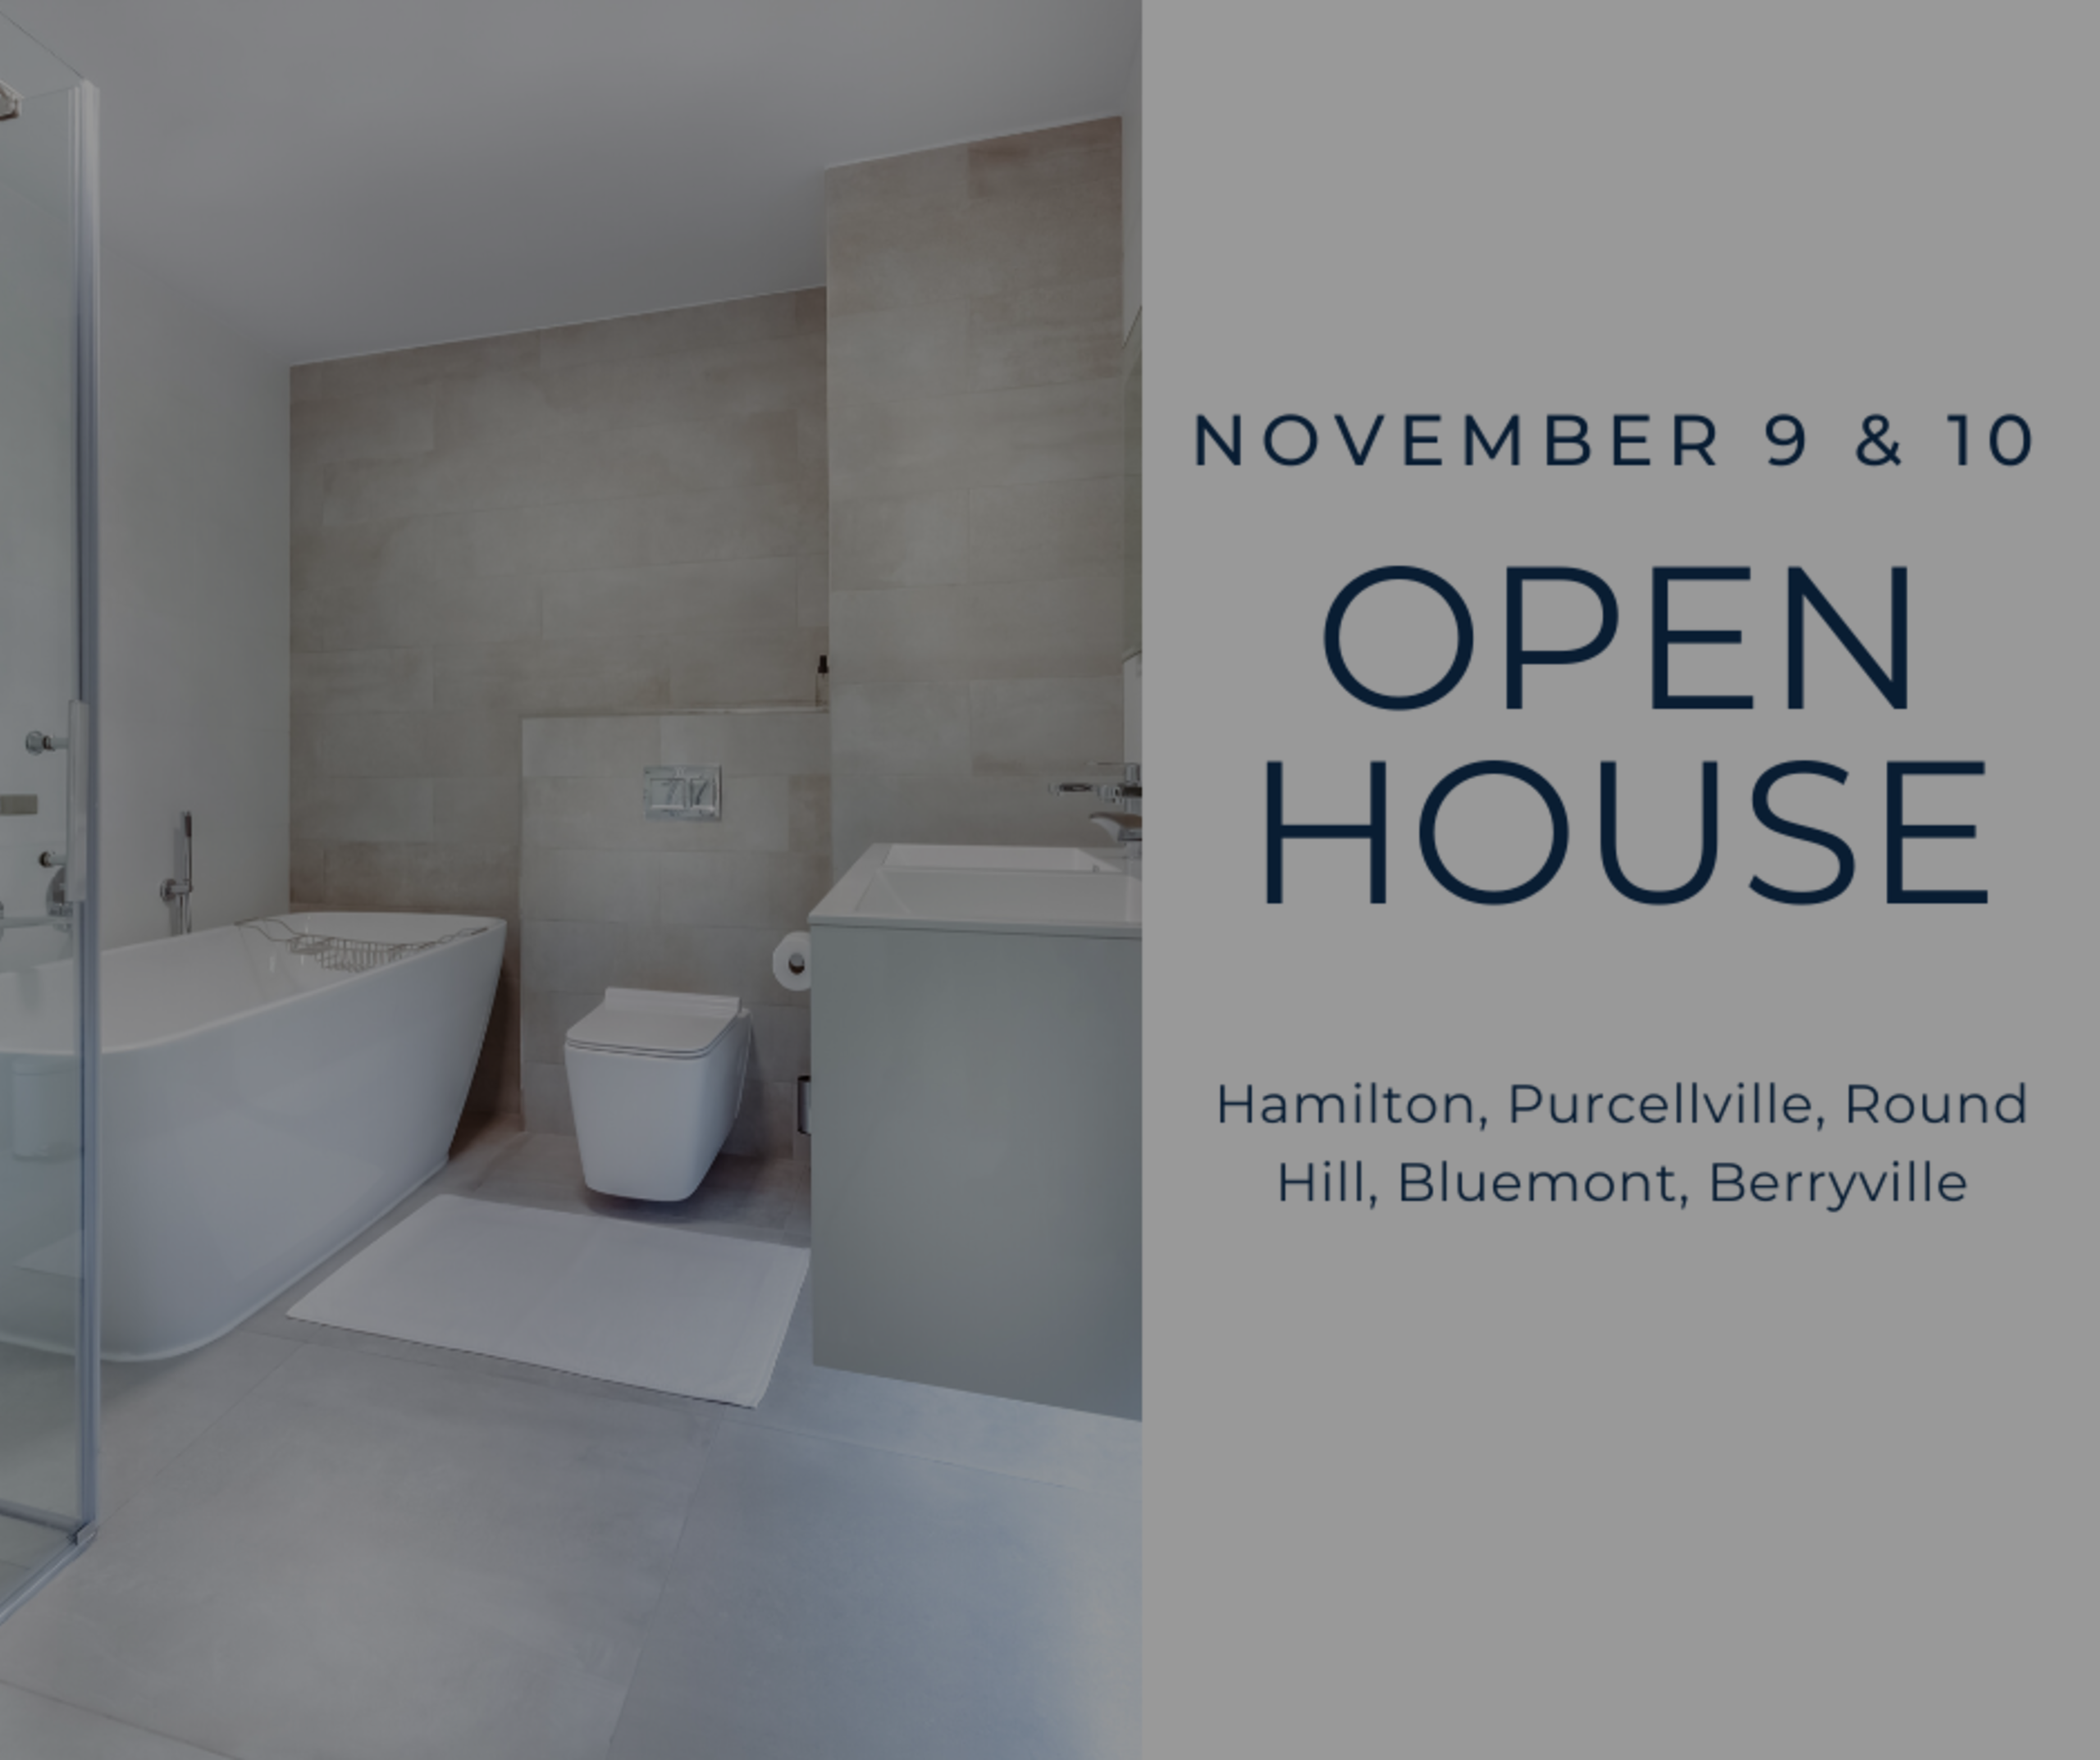 Open House List 11/9/19 – 11/10/19